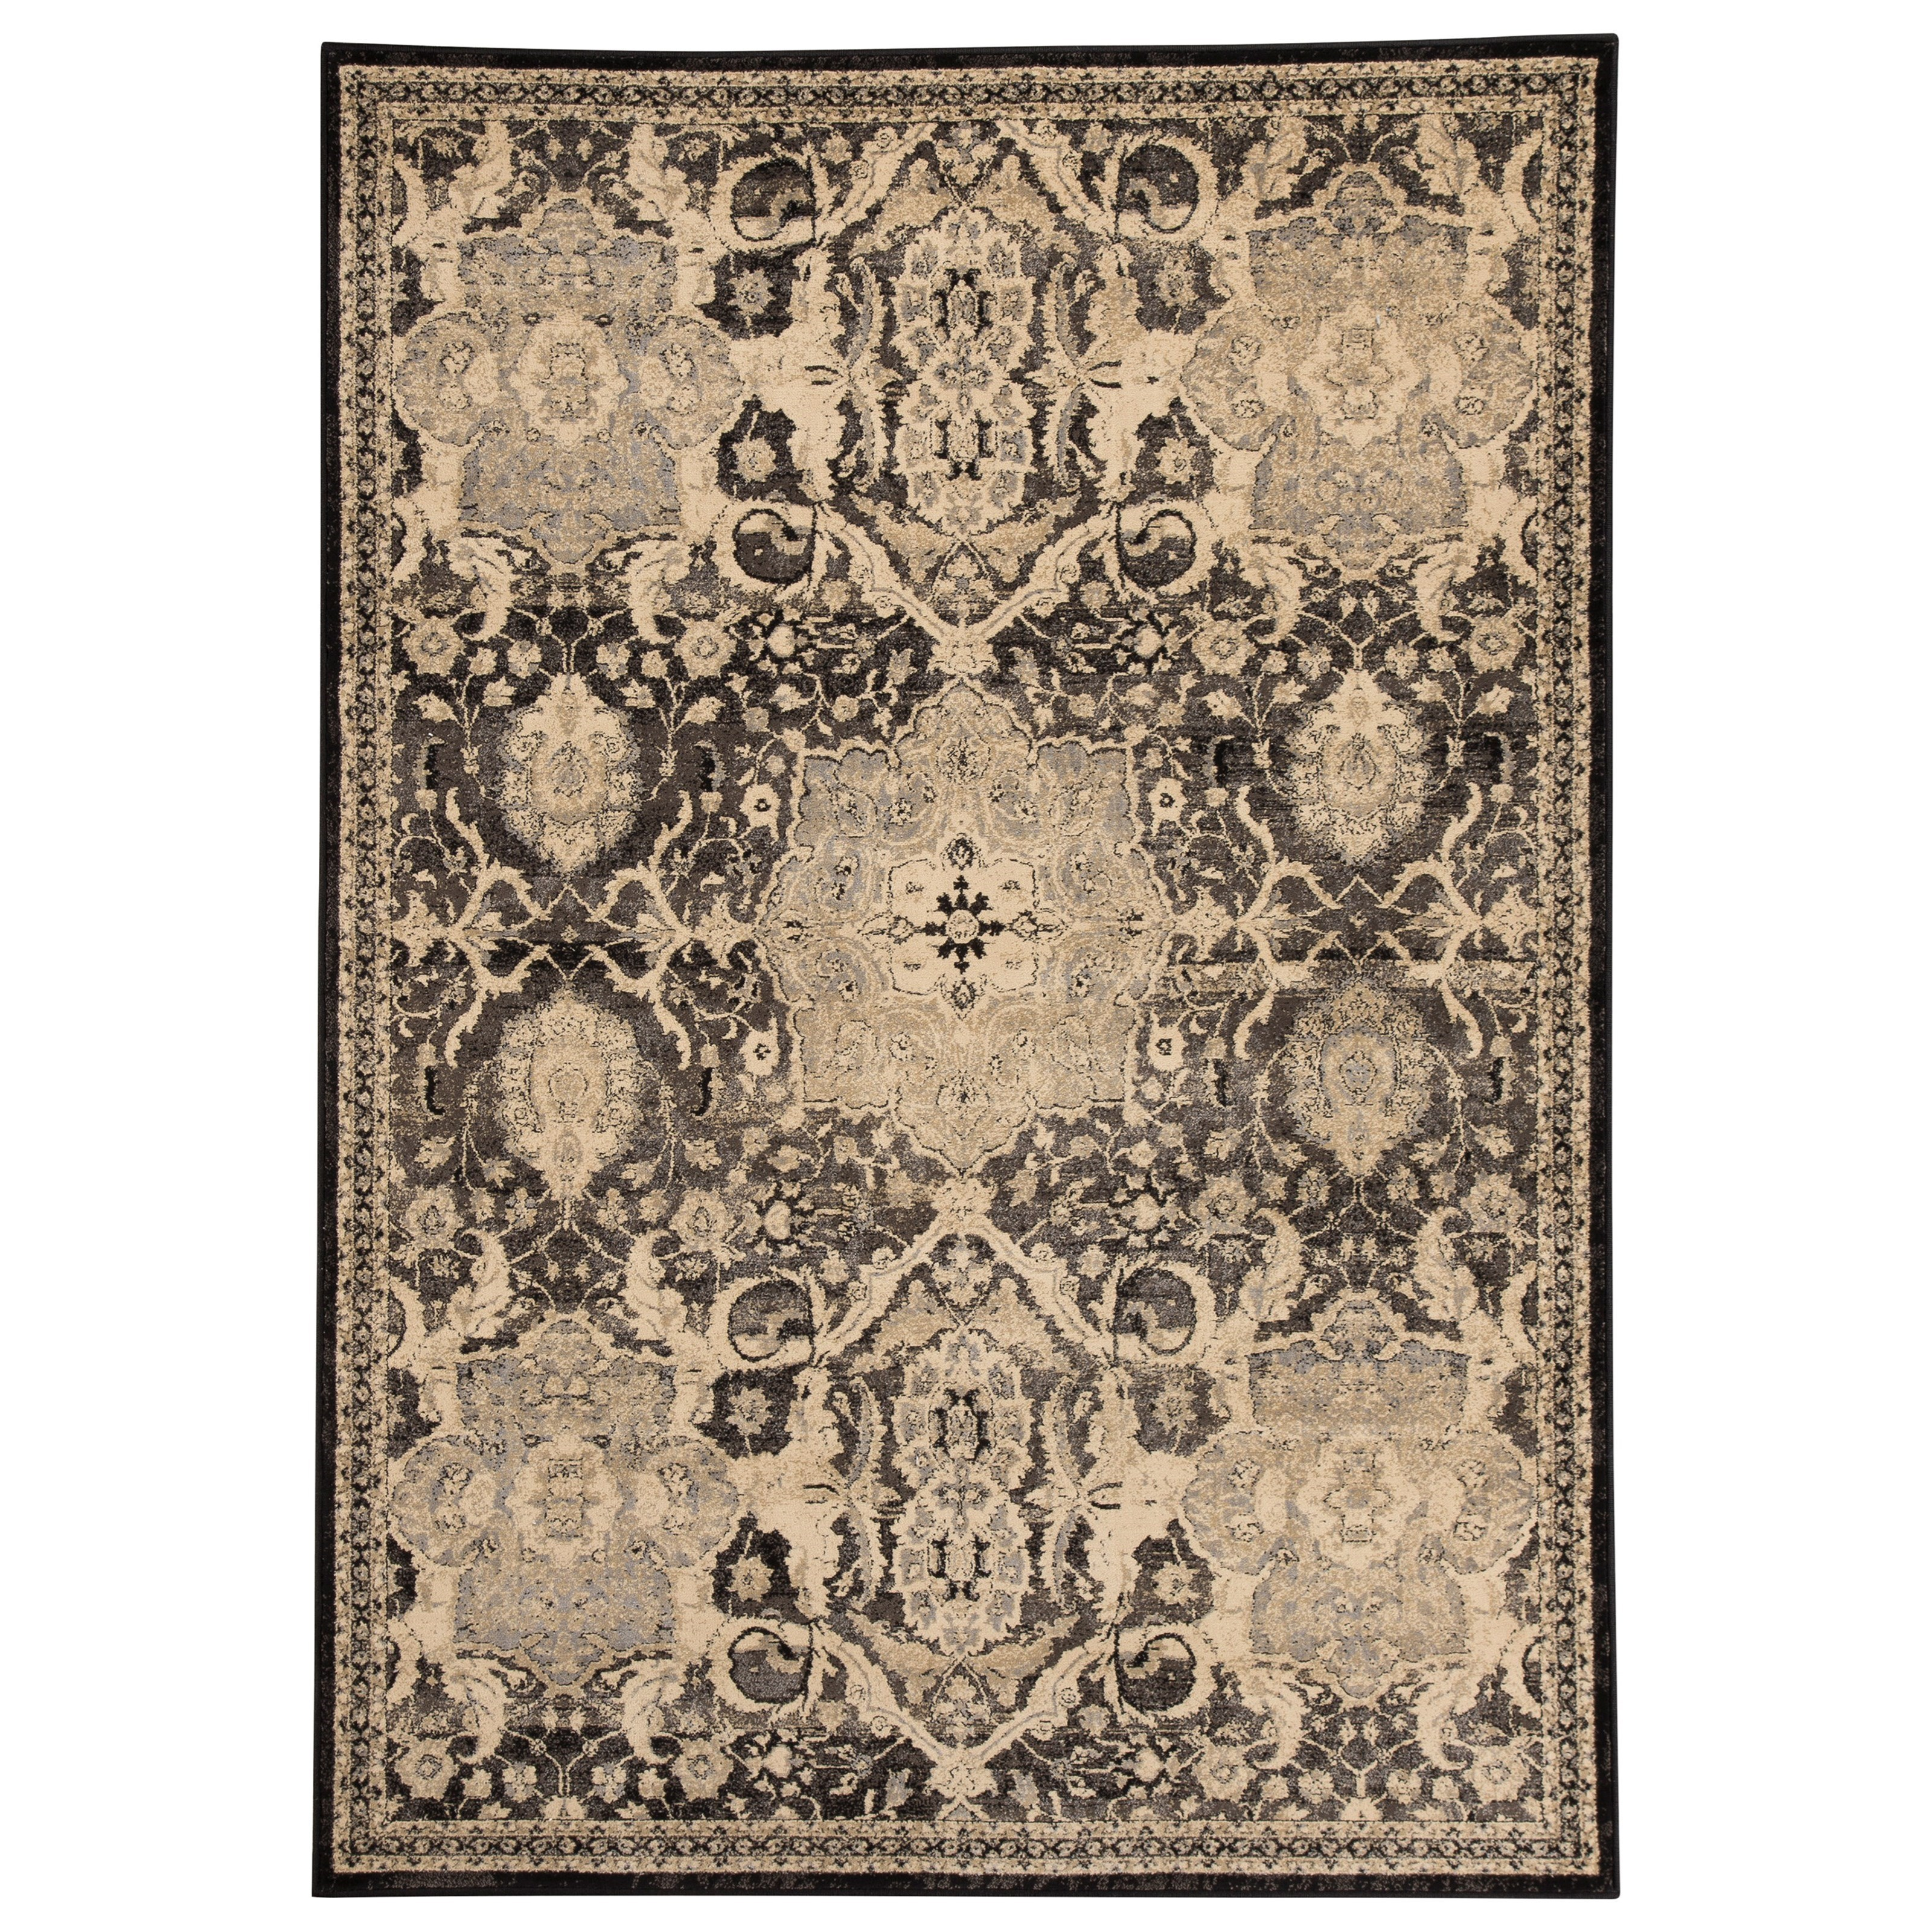 Signature Design by Ashley Transitional Area Rugs Anzhell - Black Large Rug - Item Number: R401051